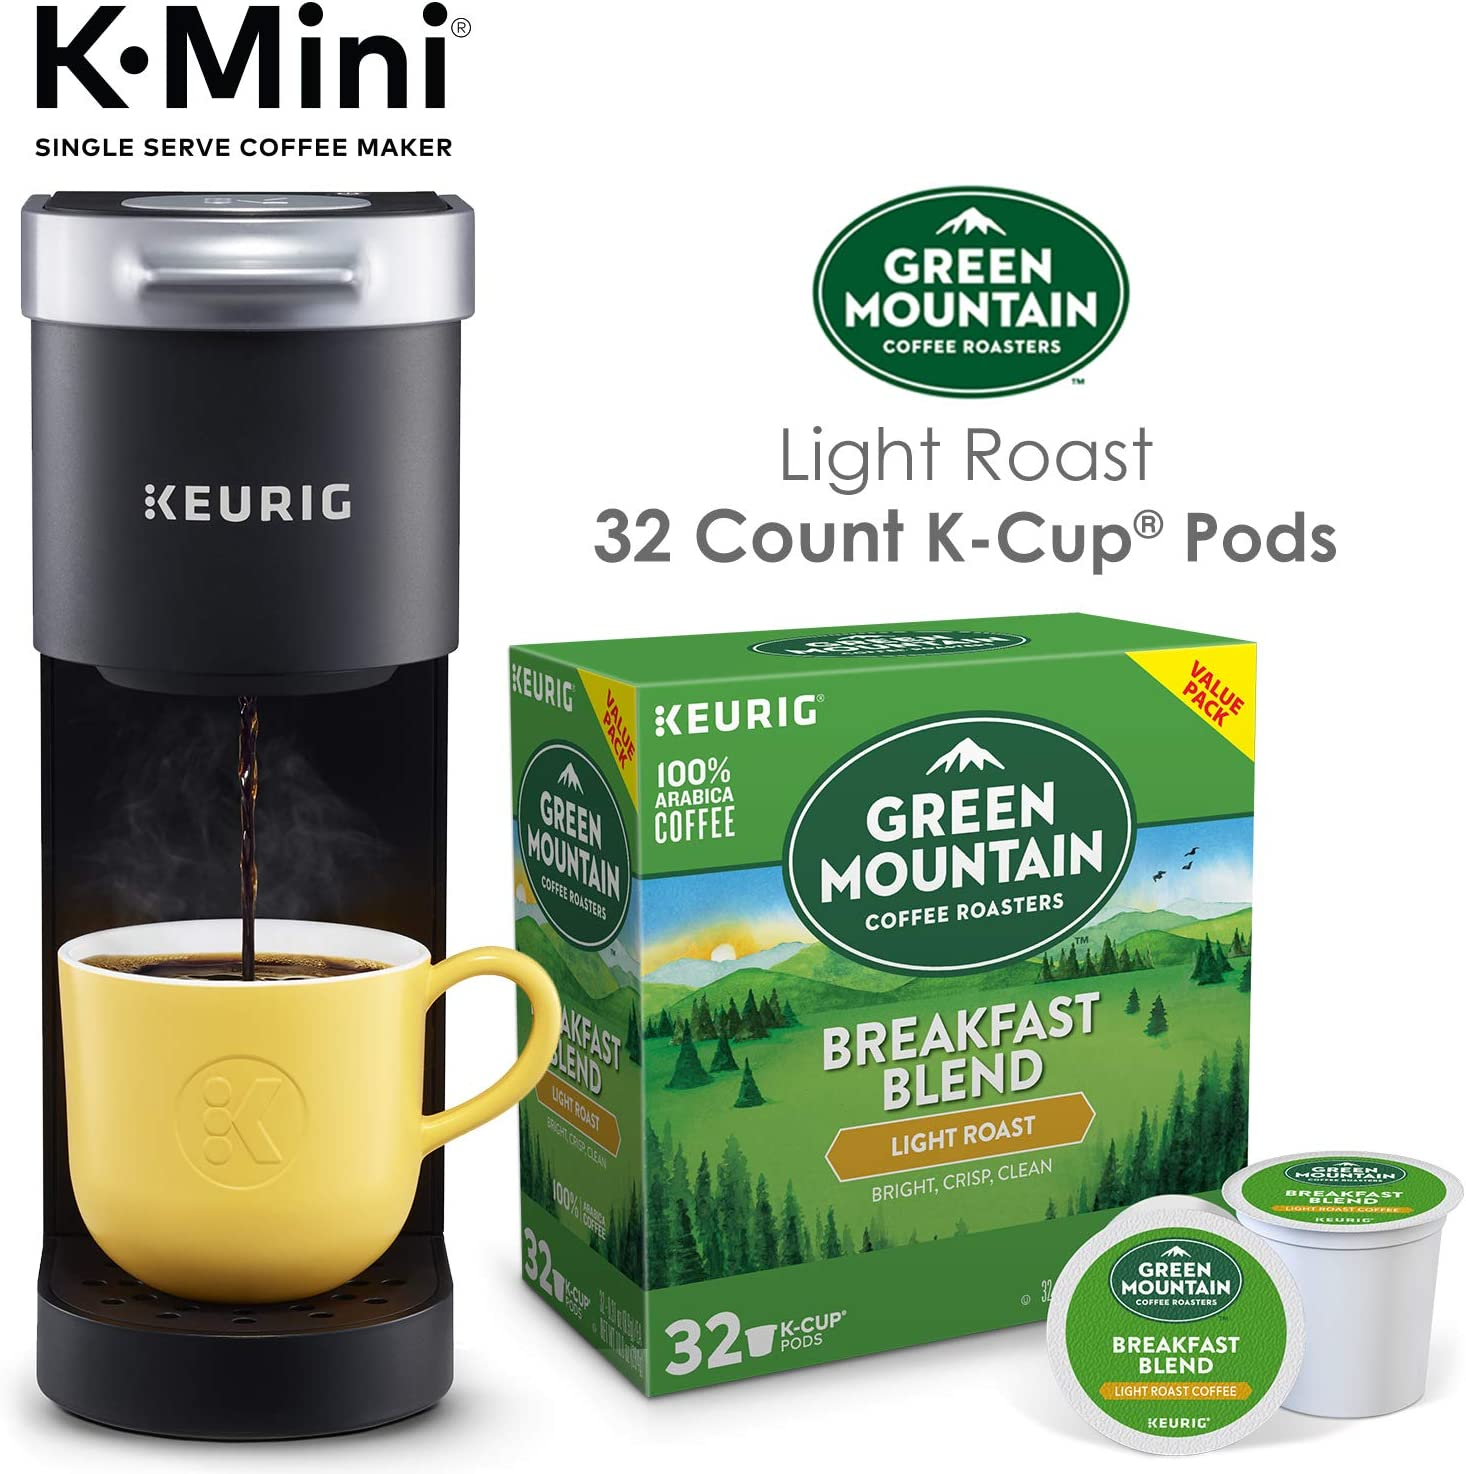 Keurig K-Mini Single Serve Coffee Maker with Green Mountain Breakfast Blend Coffee Pods, 32 count